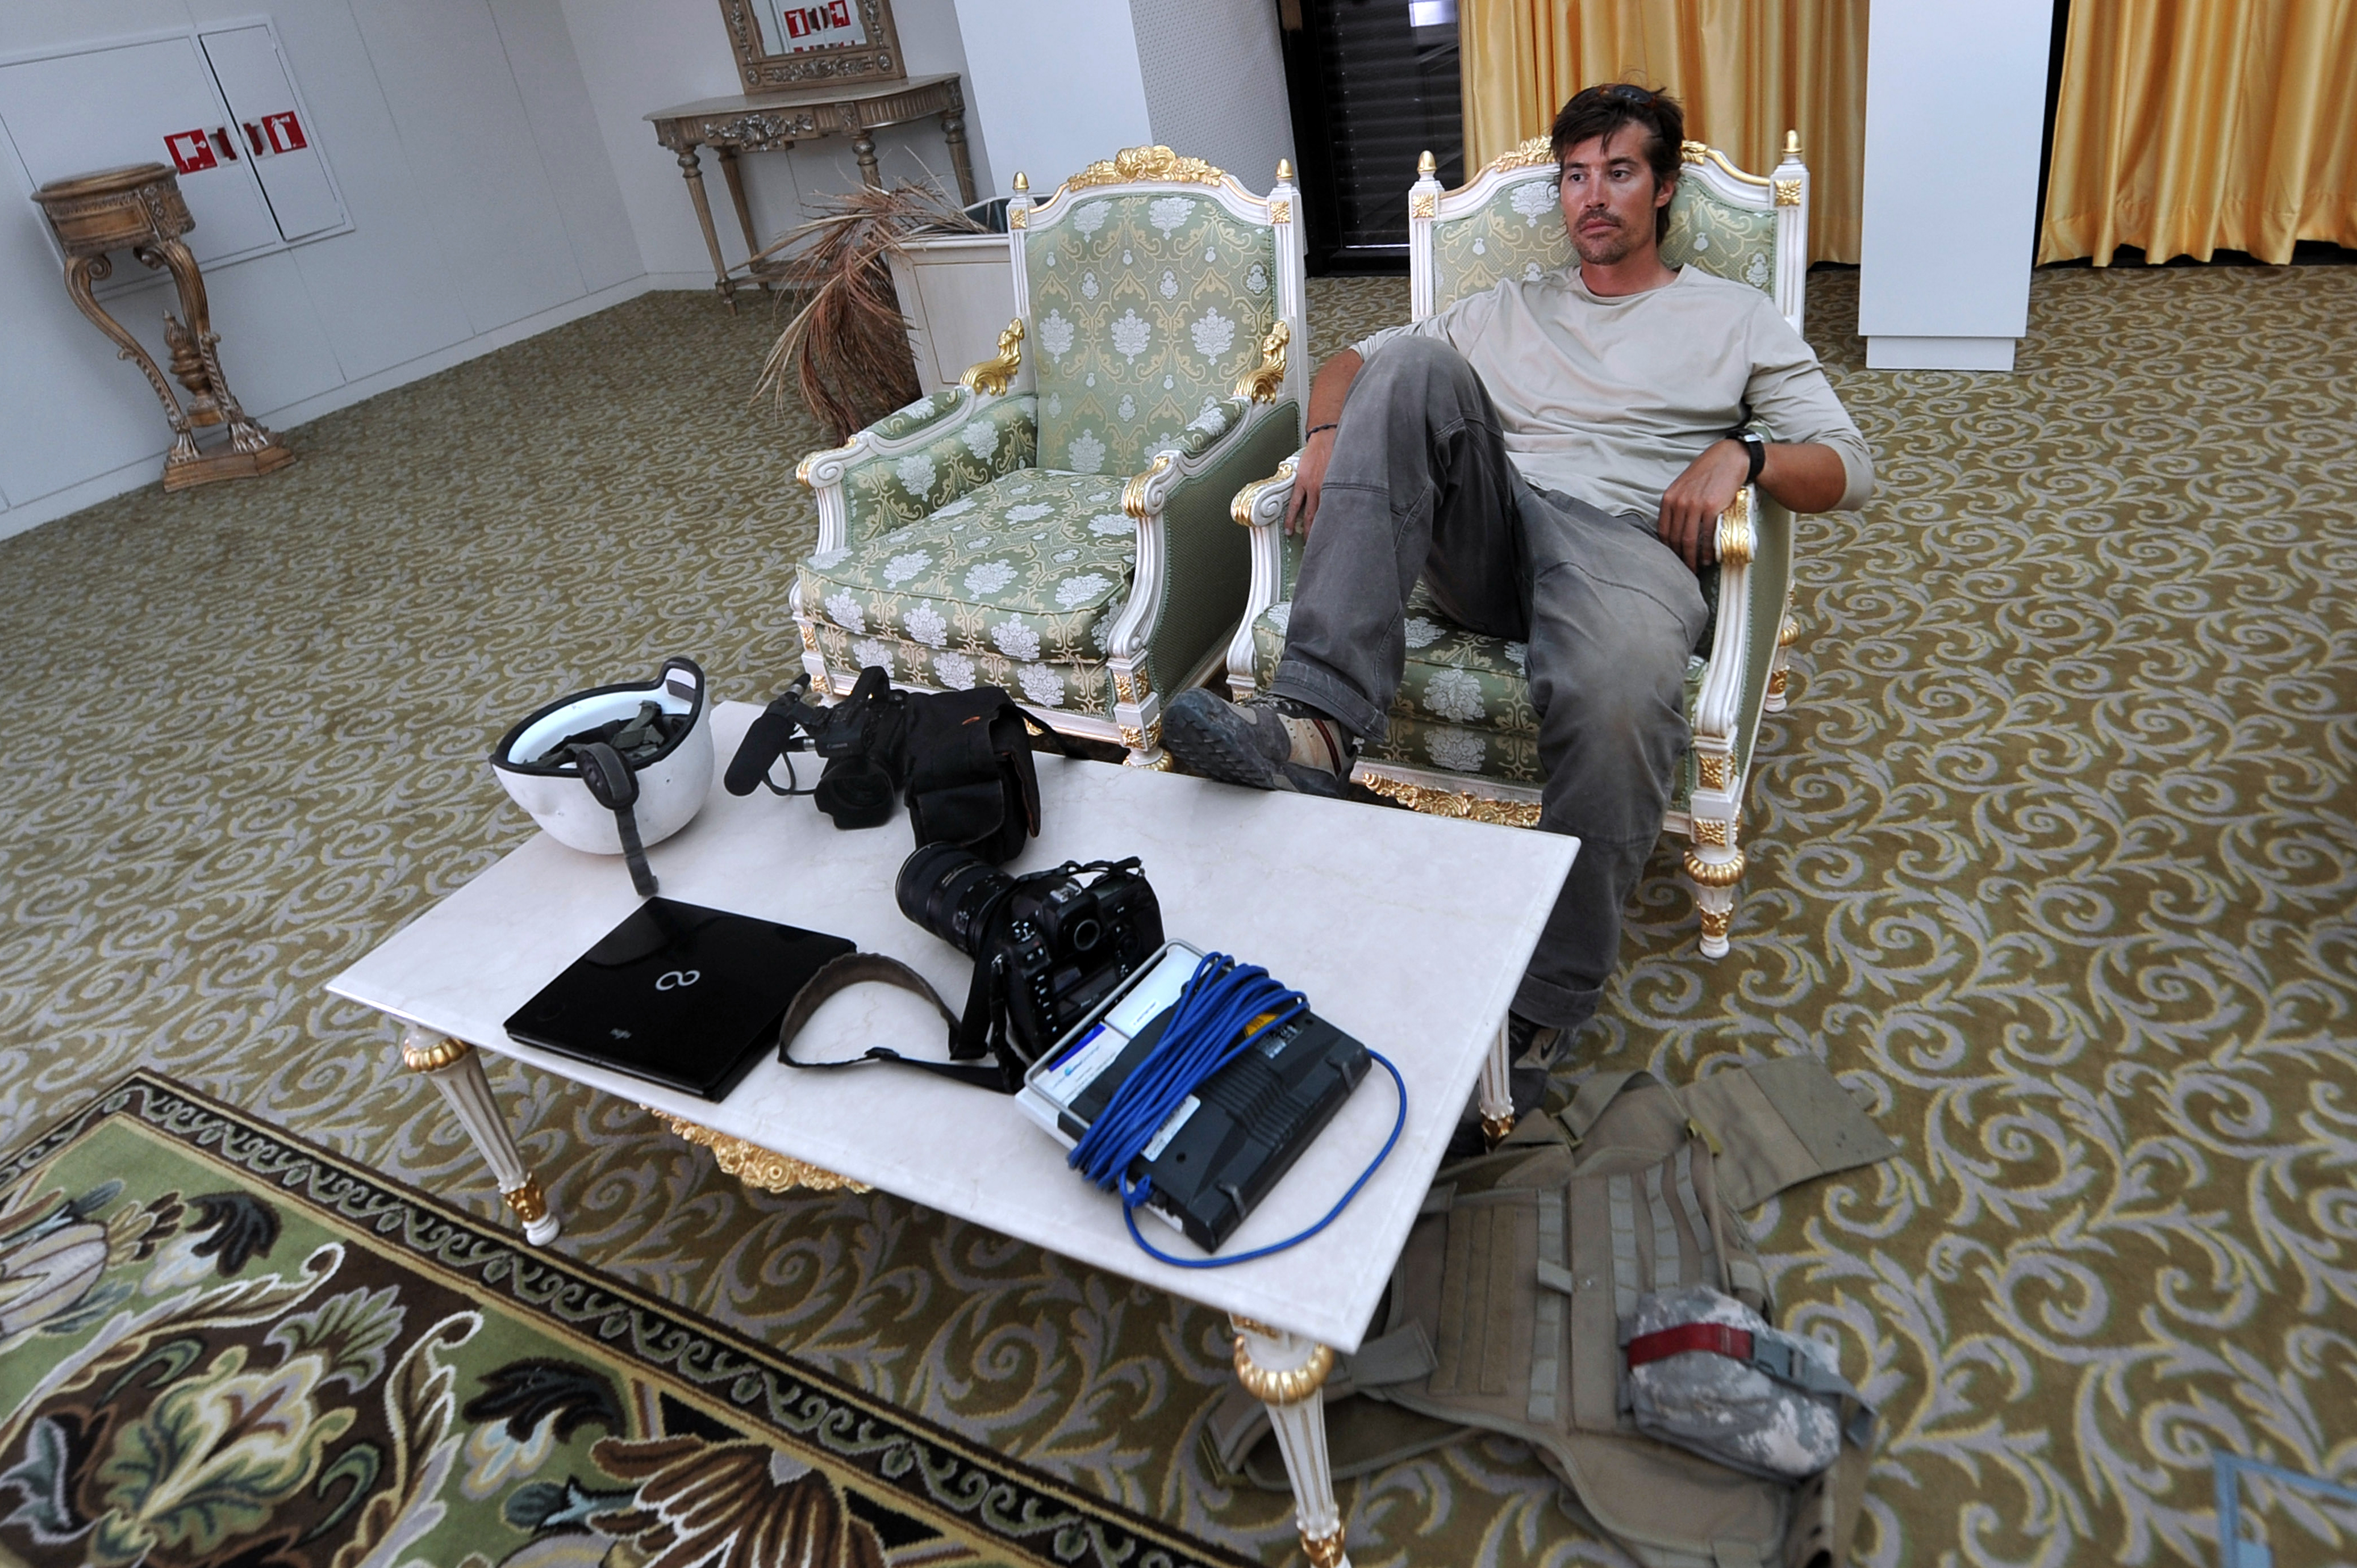 A photo taken on September 29, 2011 shows US freelance reporter James Foley resting in a room at the airport of Sirte, Libya. (ARIS MESSINIS/AFP/Getty Images)